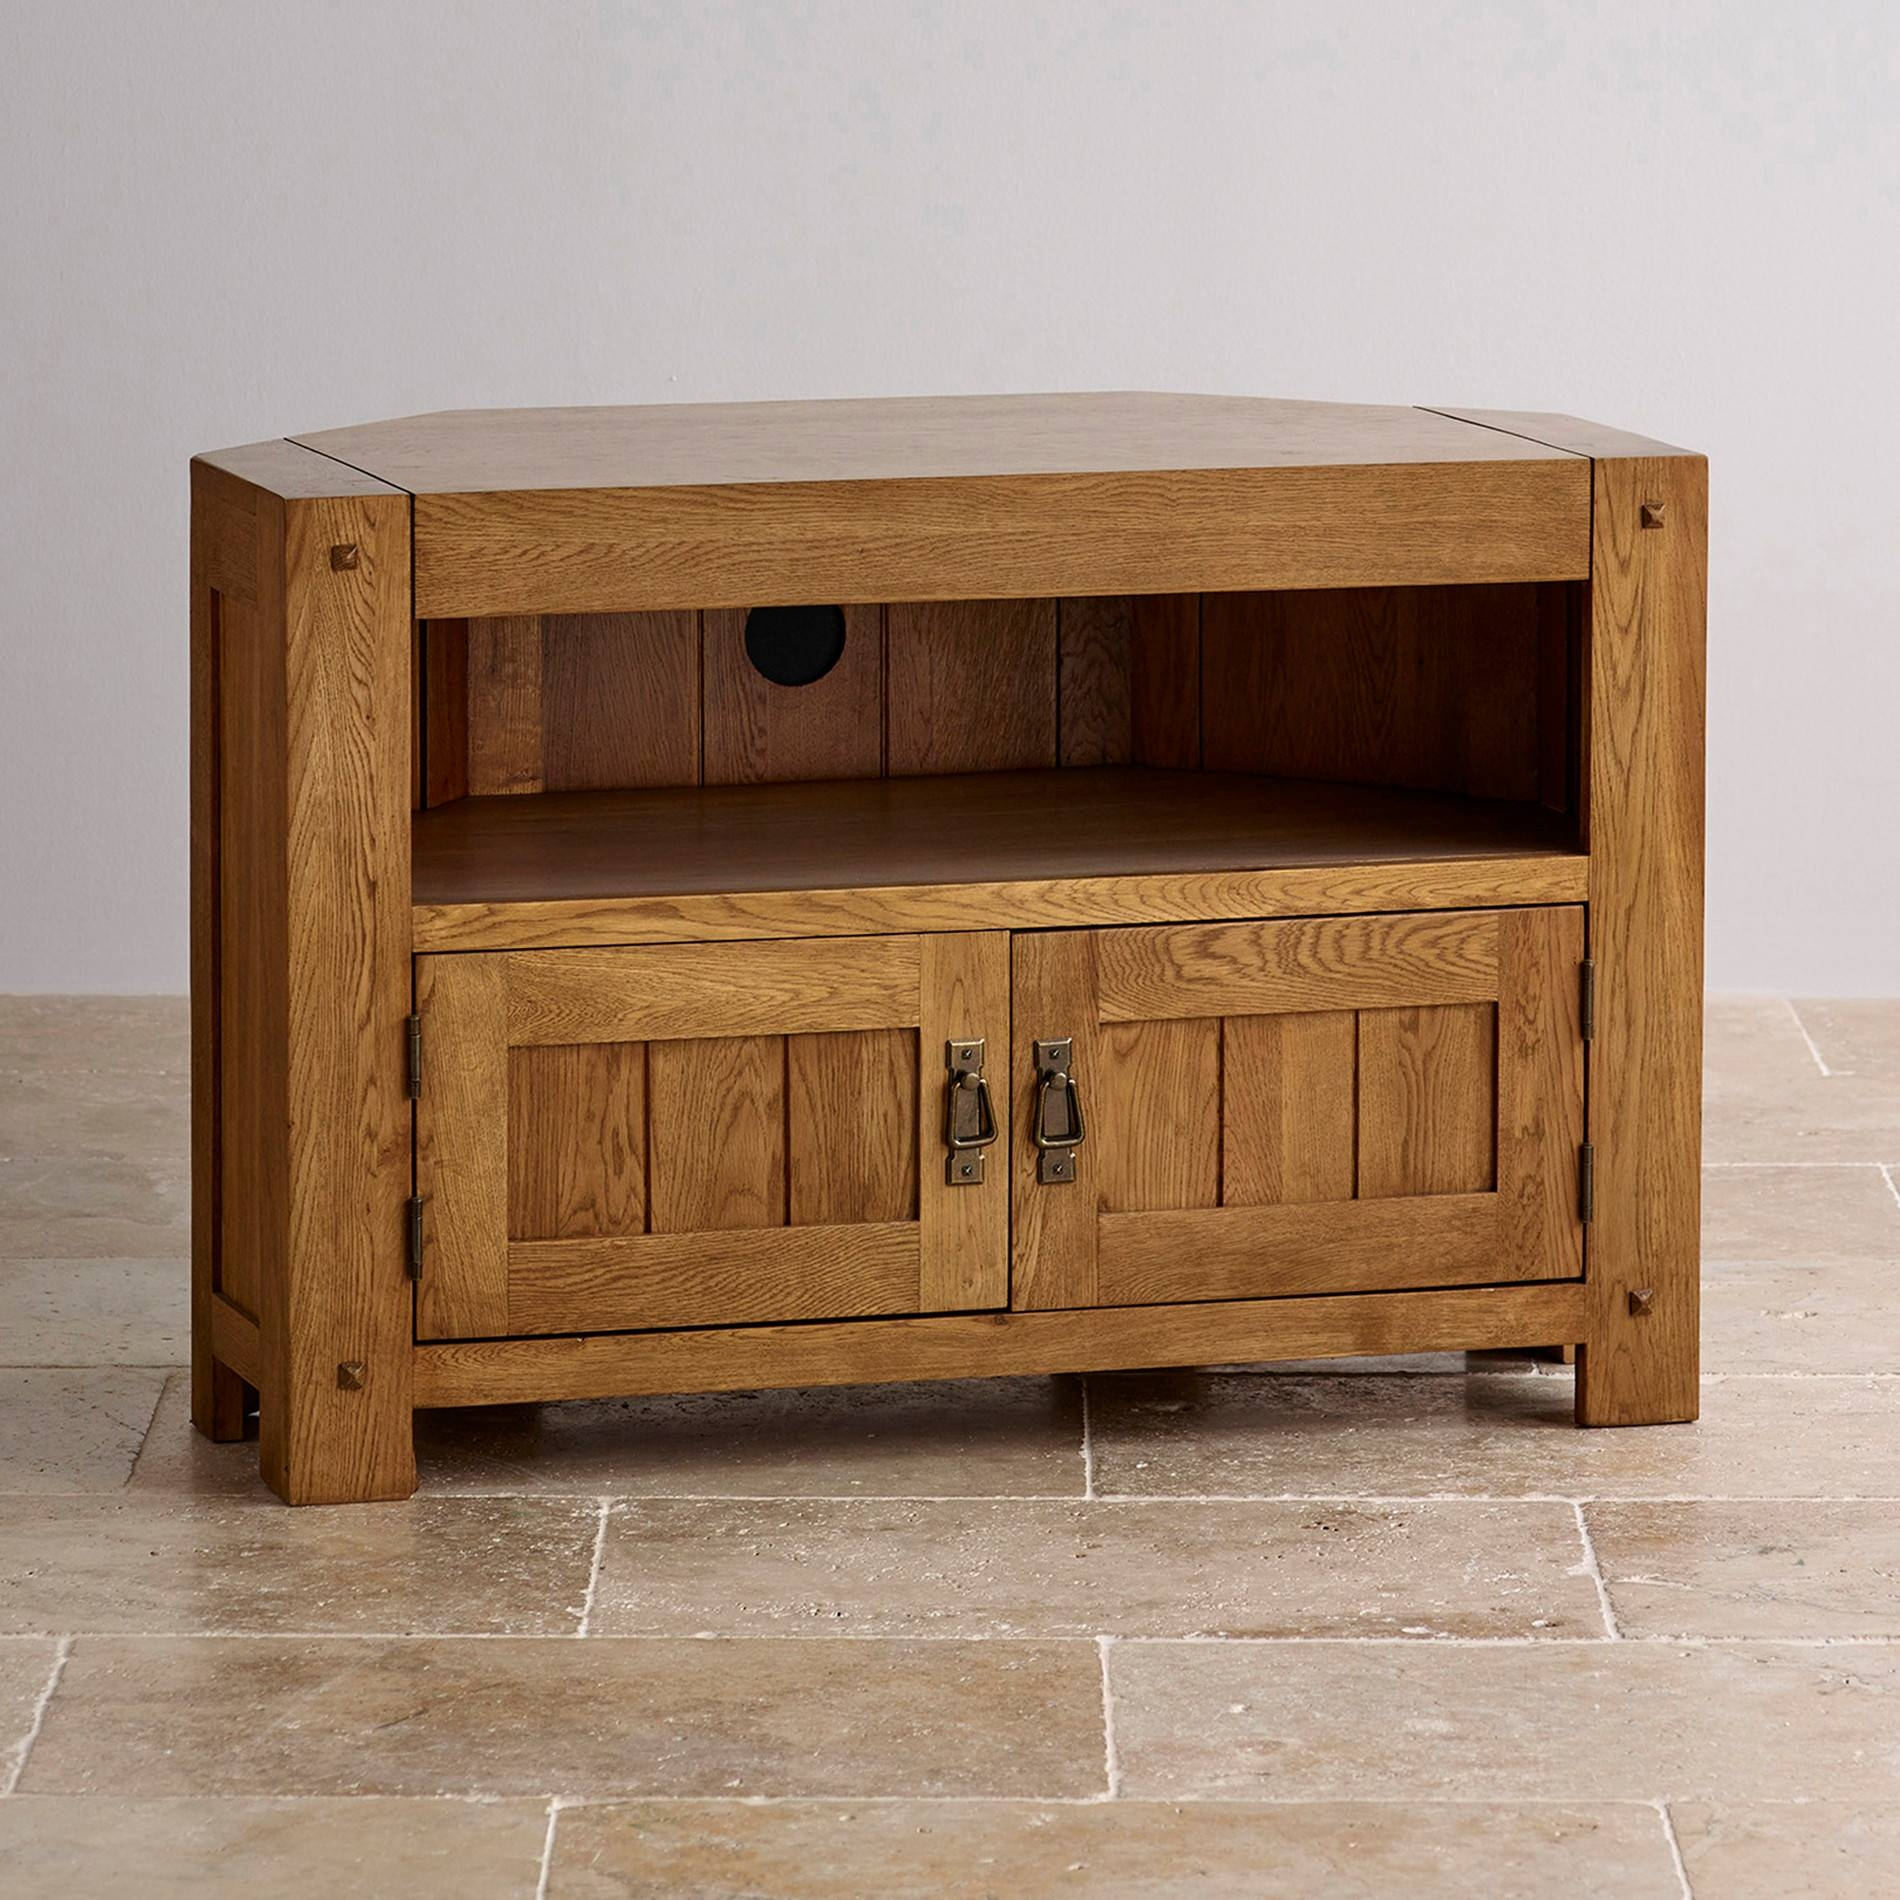 Quercus Corner Tv Cabinet In Rustic Oak | Oak Furniture Land with Corner Wooden Tv Cabinets (Image 11 of 15)